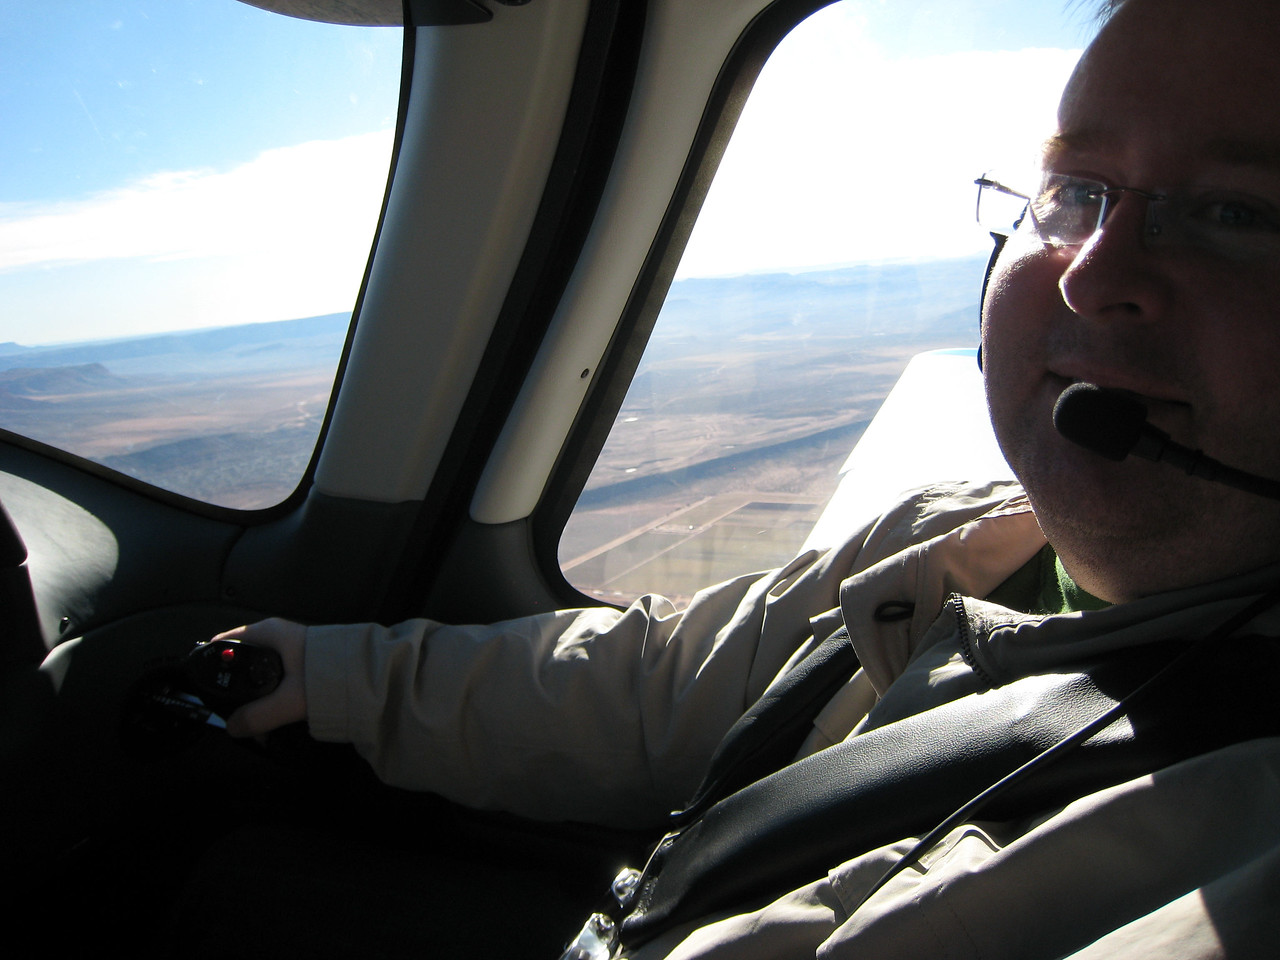 Believe it or not, I was actually piloting this plane - don't think I had any clue what I was doing!